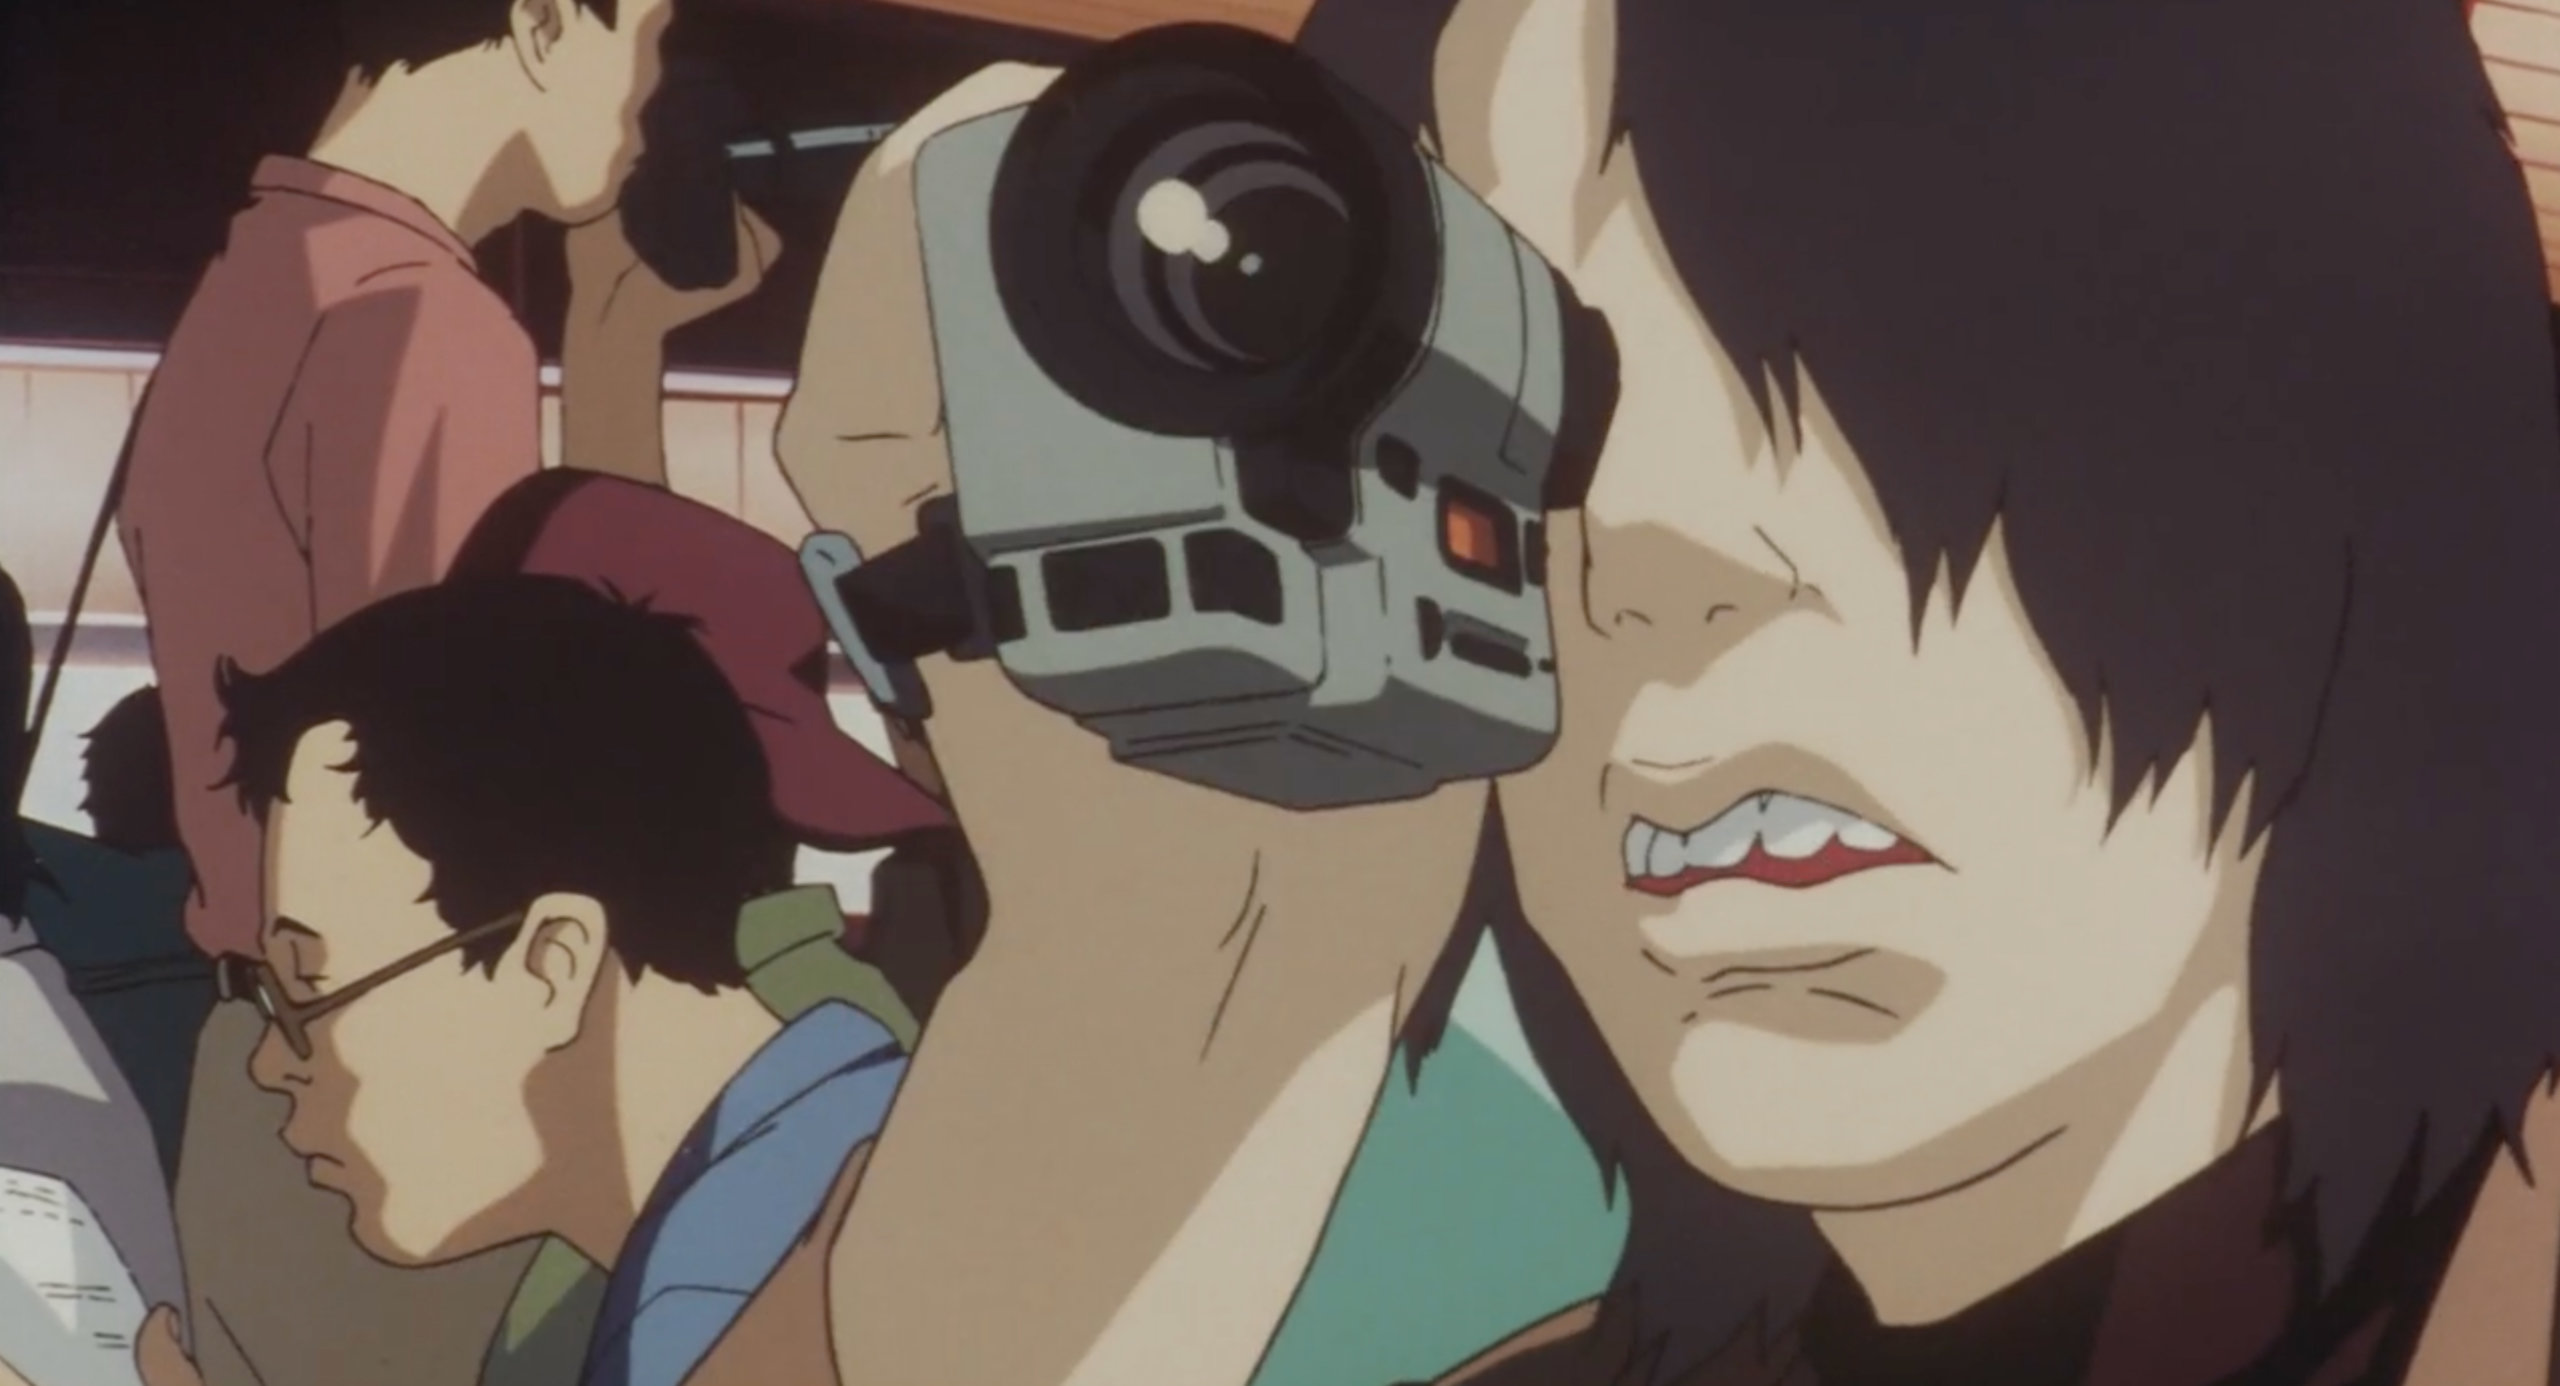 Me-Mania videotapes a poster of CHAM! in Perfect Blue